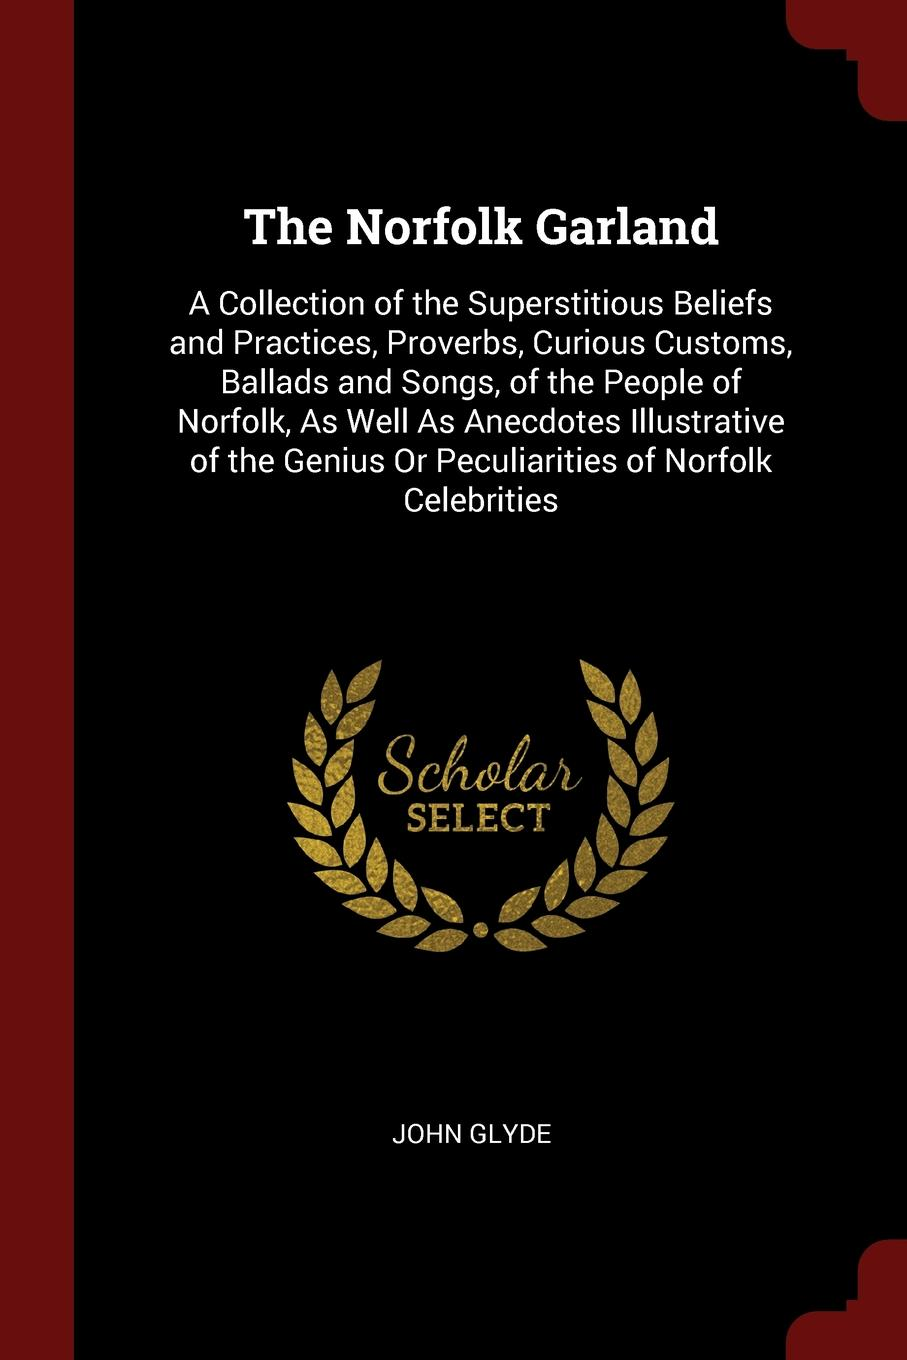 John Glyde The Norfolk Garland. A Collection of the Superstitious Beliefs and Practices, Proverbs, Curious Customs, Ballads and Songs, of the People of Norfolk, As Well As Anecdotes Illustrative of the Genius Or Peculiarities of Norfolk Celebrities john glyde the norfolk garland a collection of the superstitious beliefs and practices proverbs curious customs ballads and songs of the people of norfolk or peculiarities of norfolk celebrities